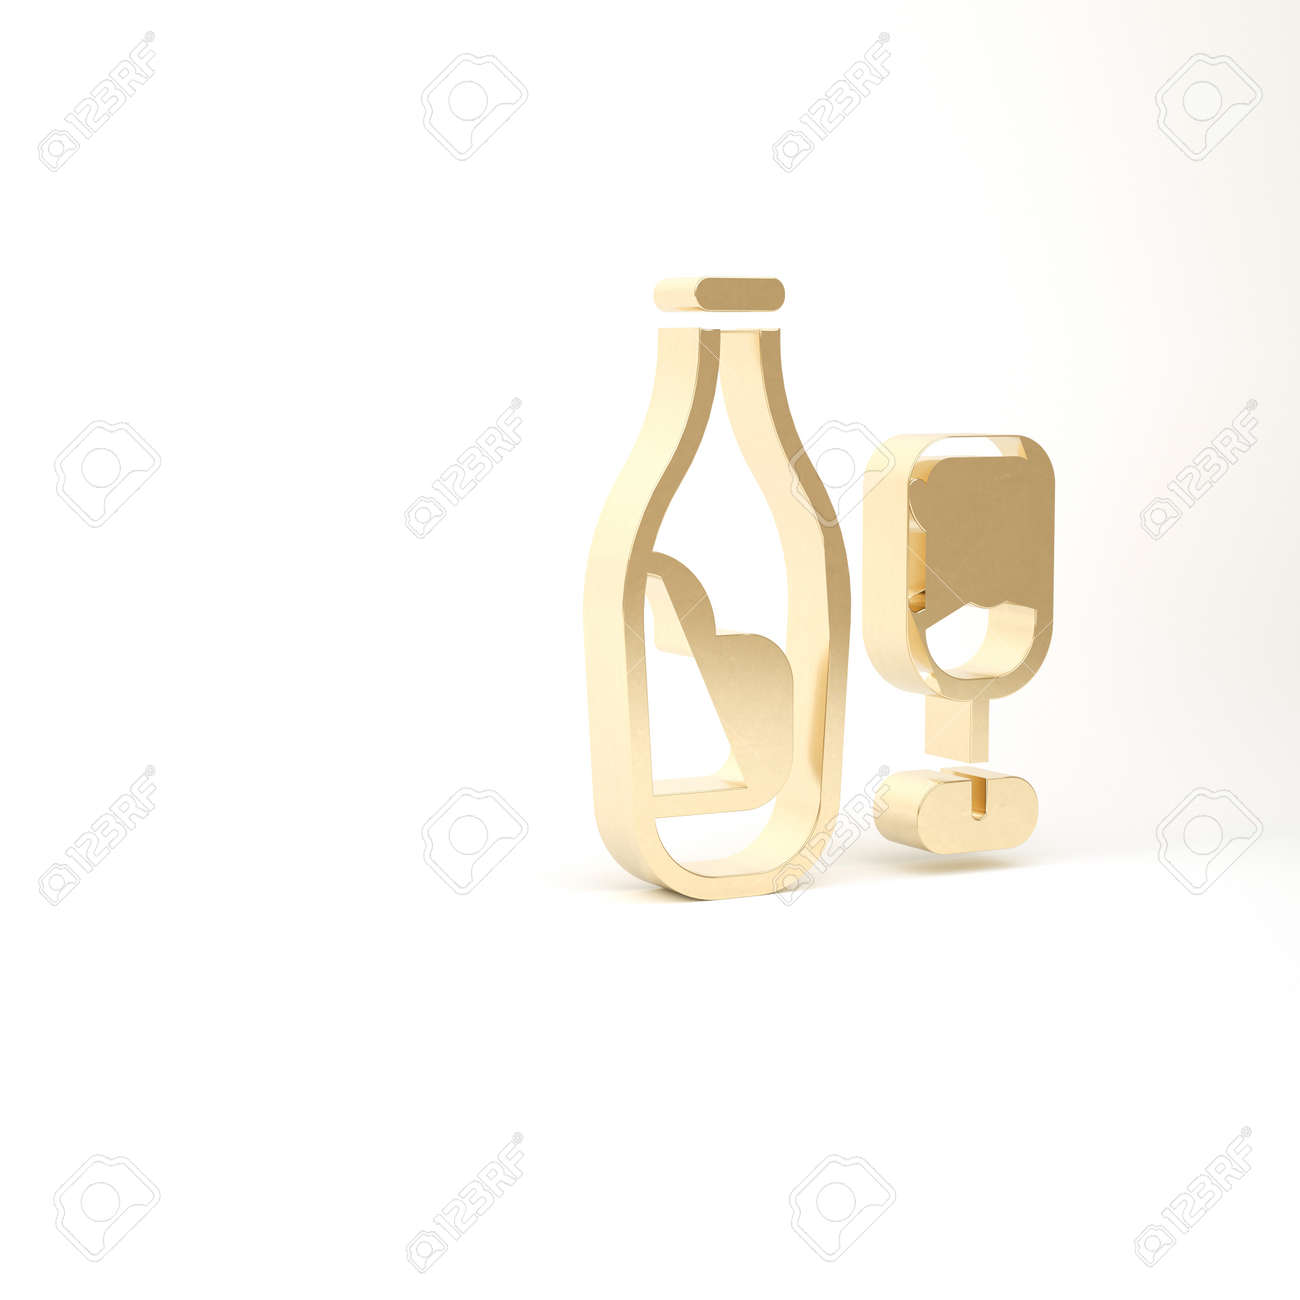 Gold Wine bottle with glass icon isolated on white background. 3d illustration 3D render - 169797697